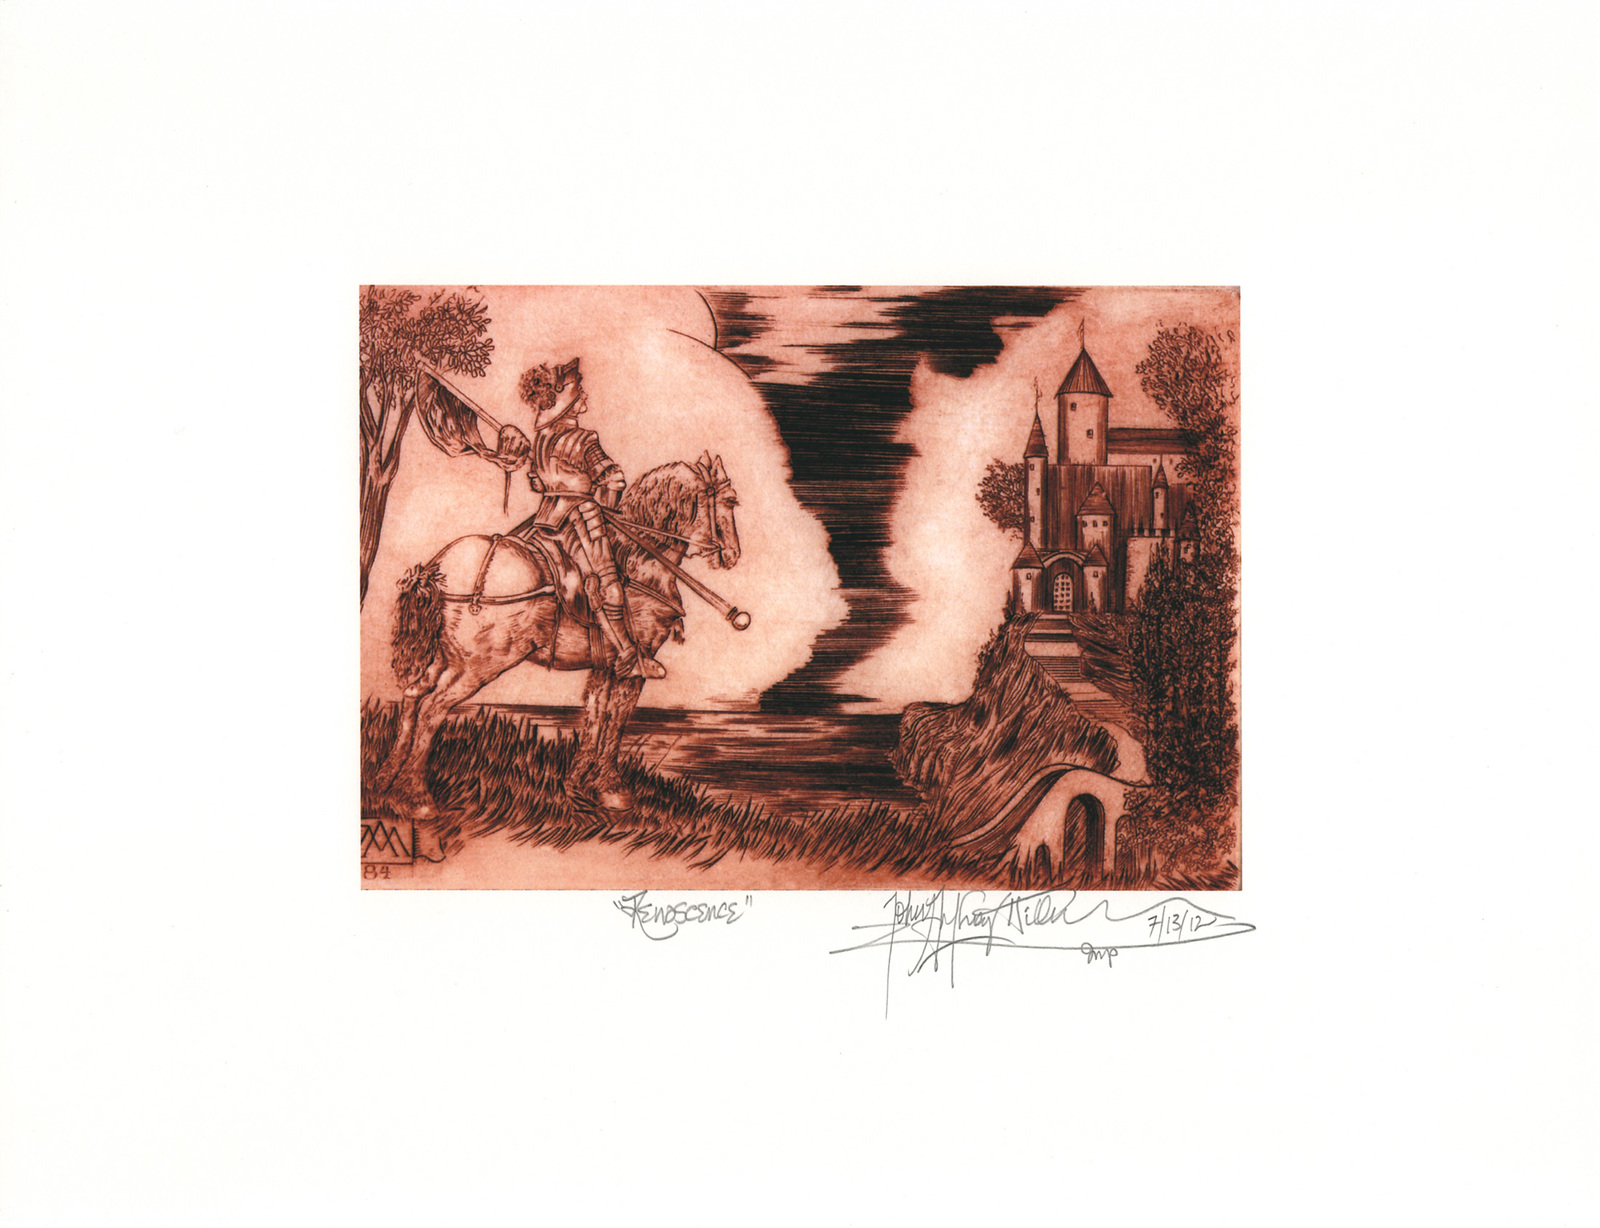 Renascence (after Albrecht Durer)  -John Anthony Miller Giclee print (signed)